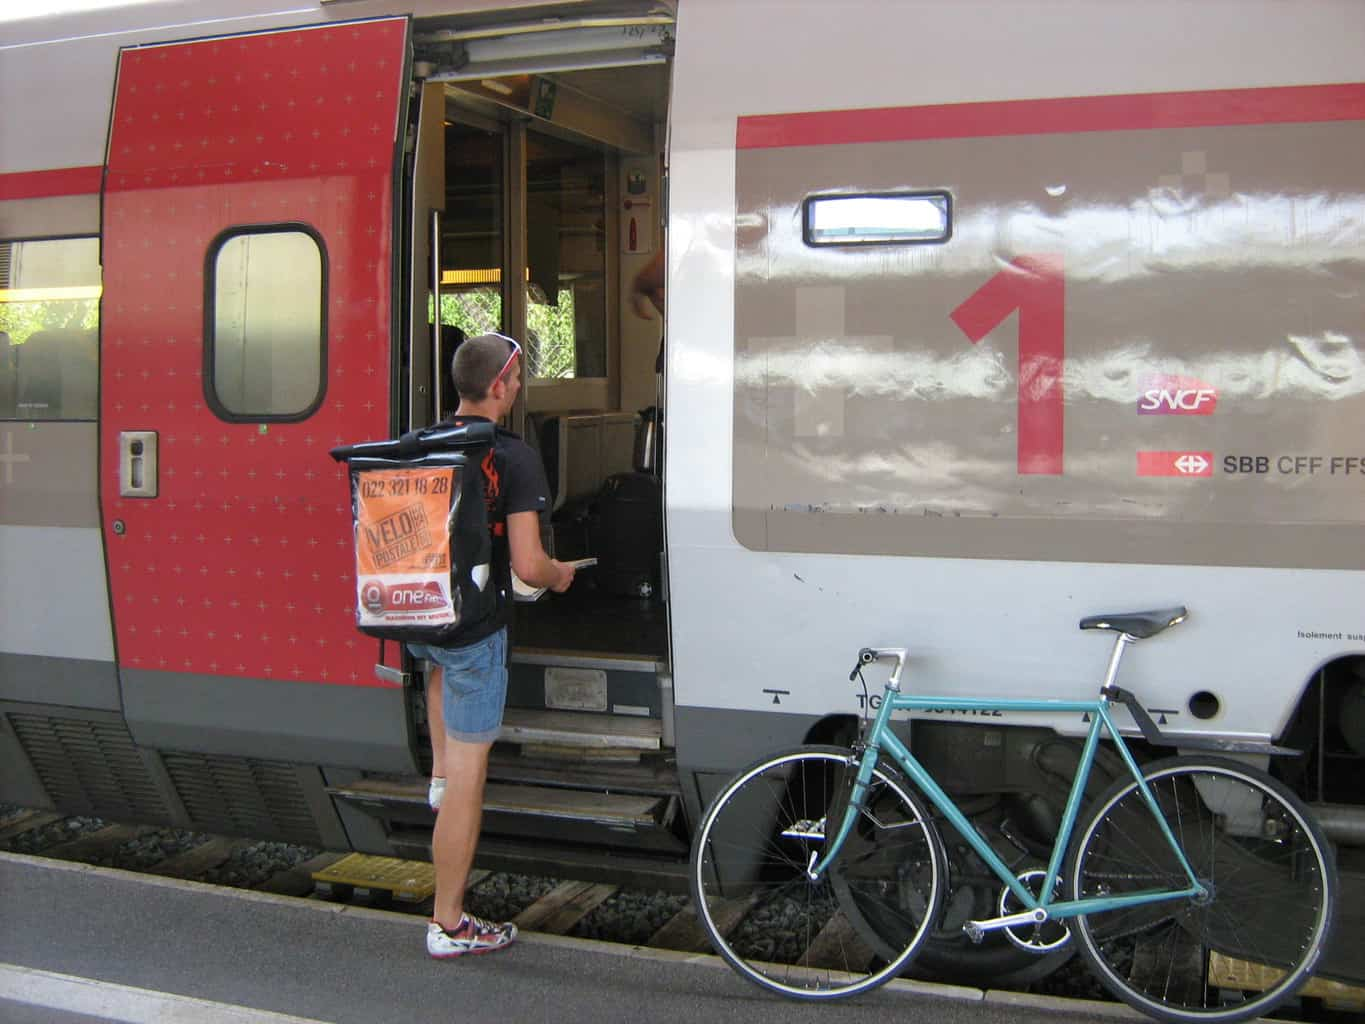 Taking Bikes on the Train